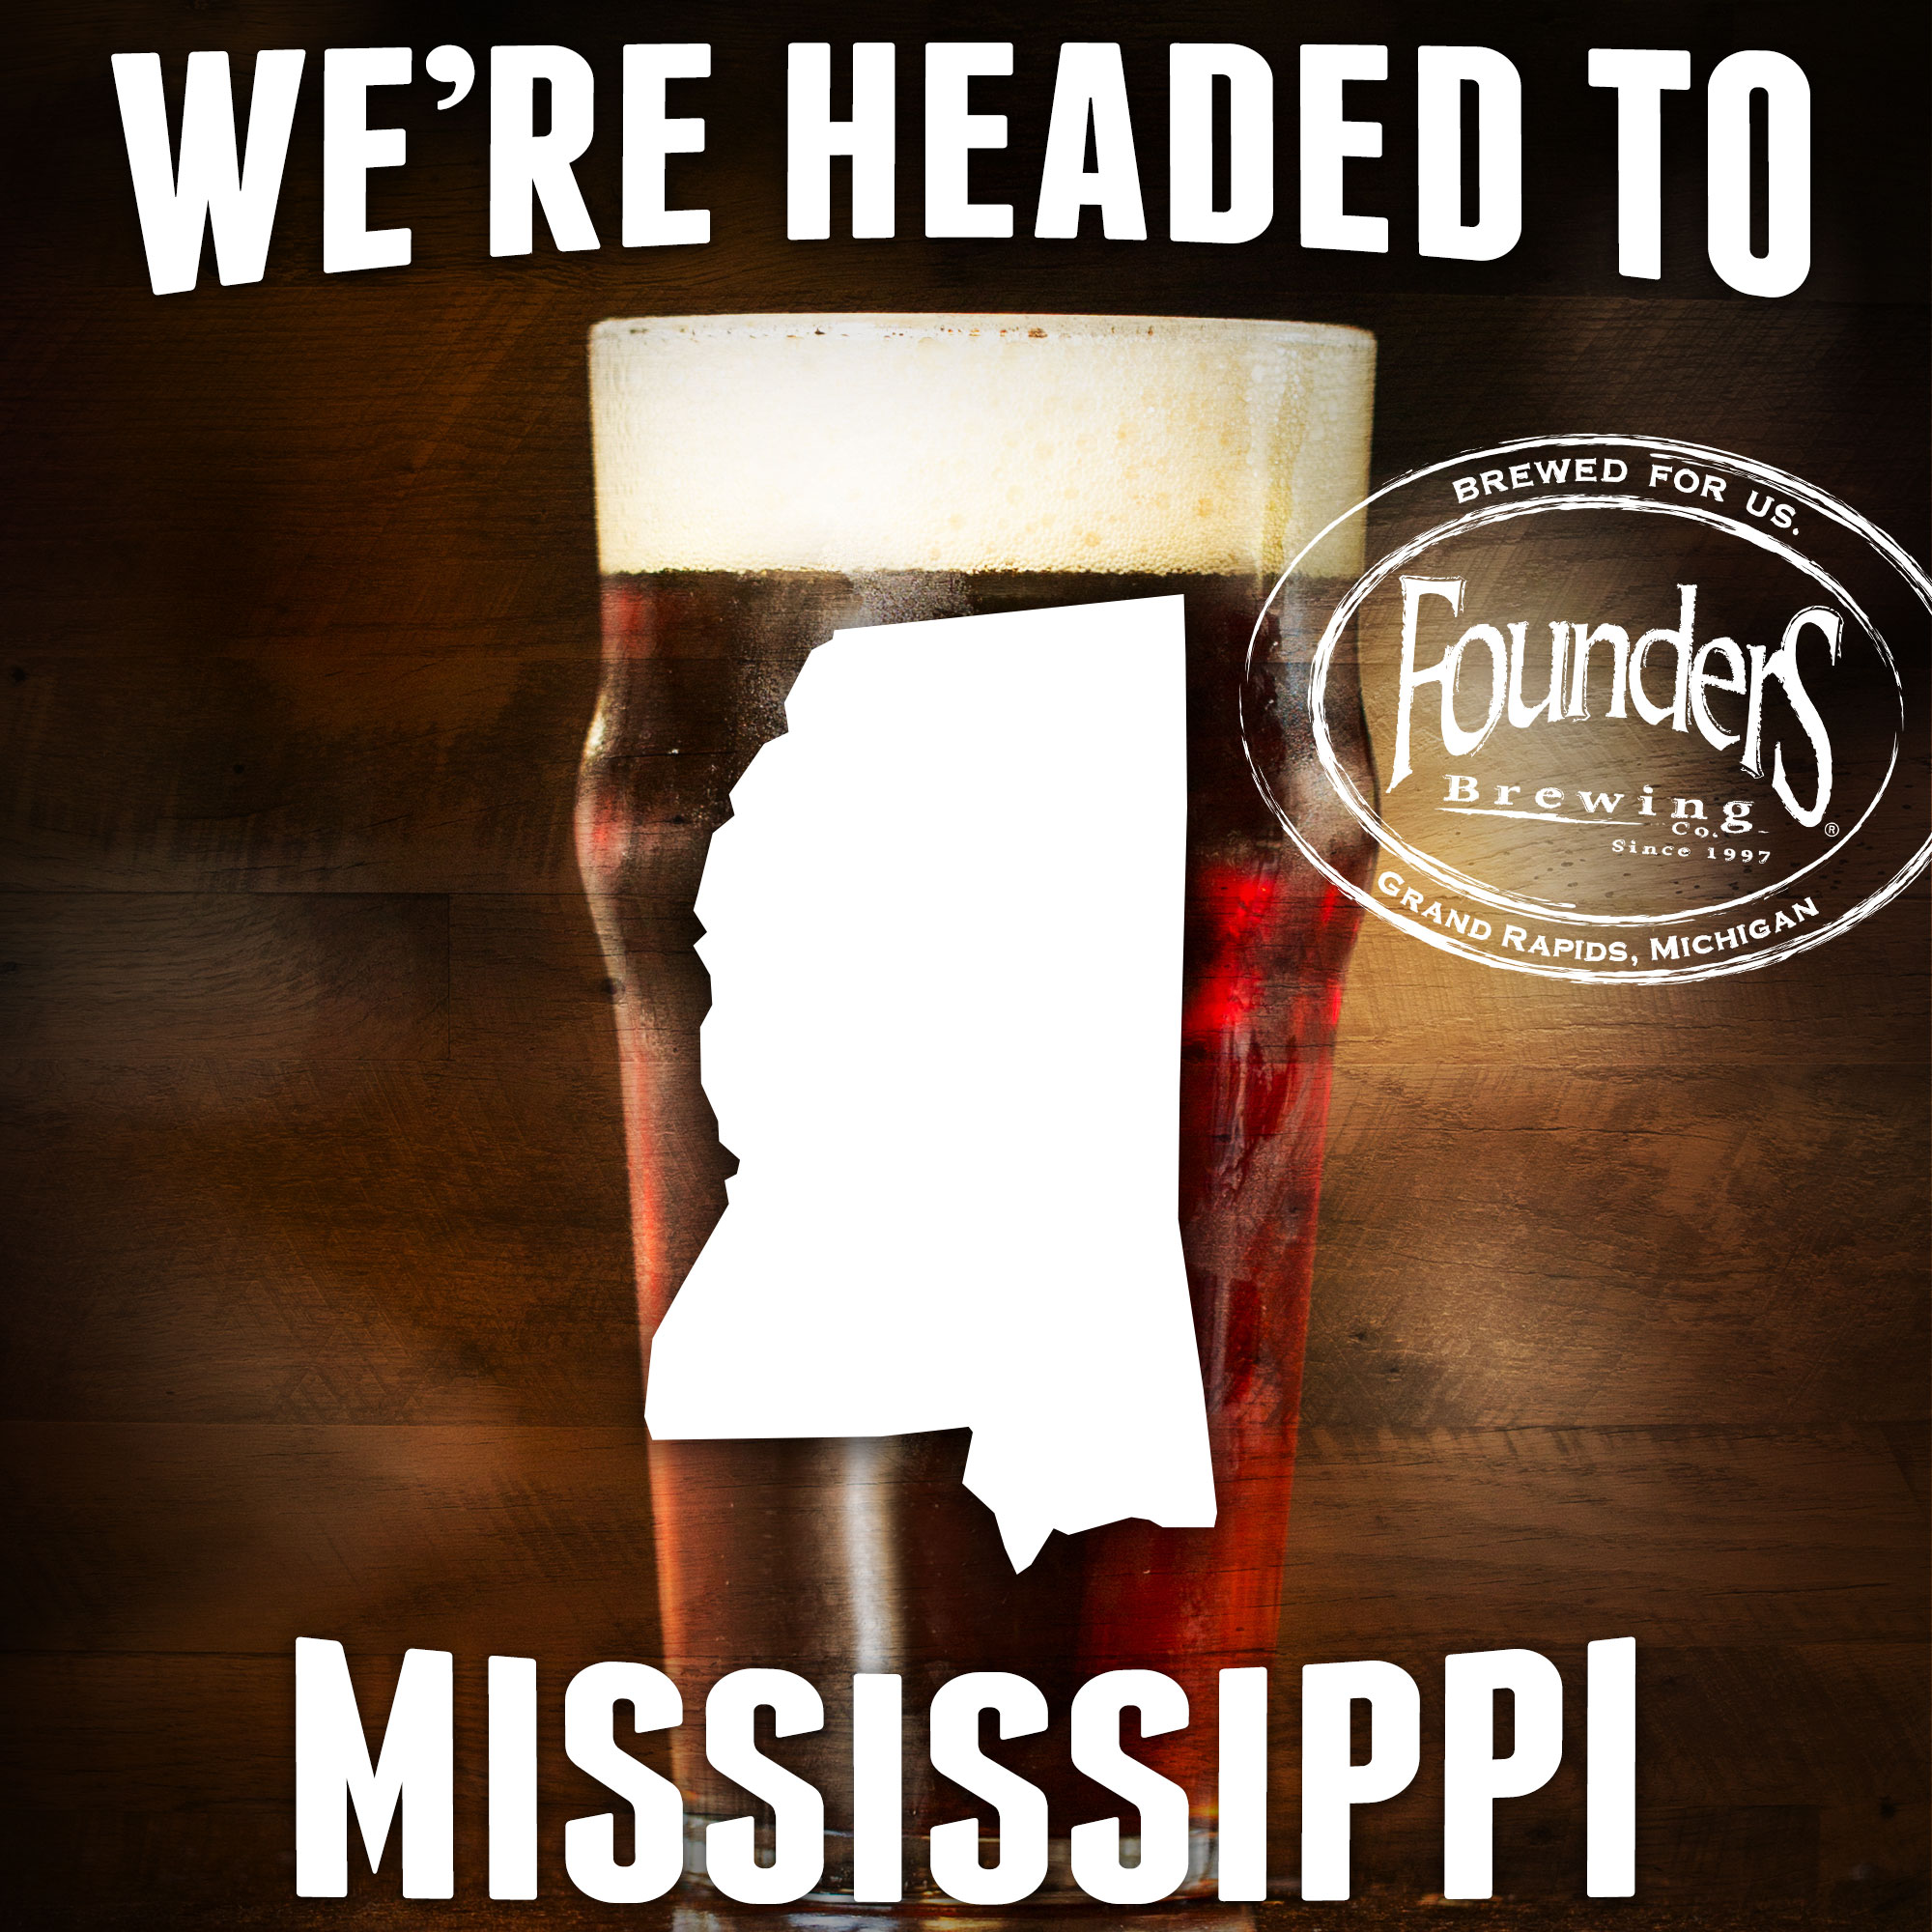 Founder's promotion showing that they're coming to Mississippi